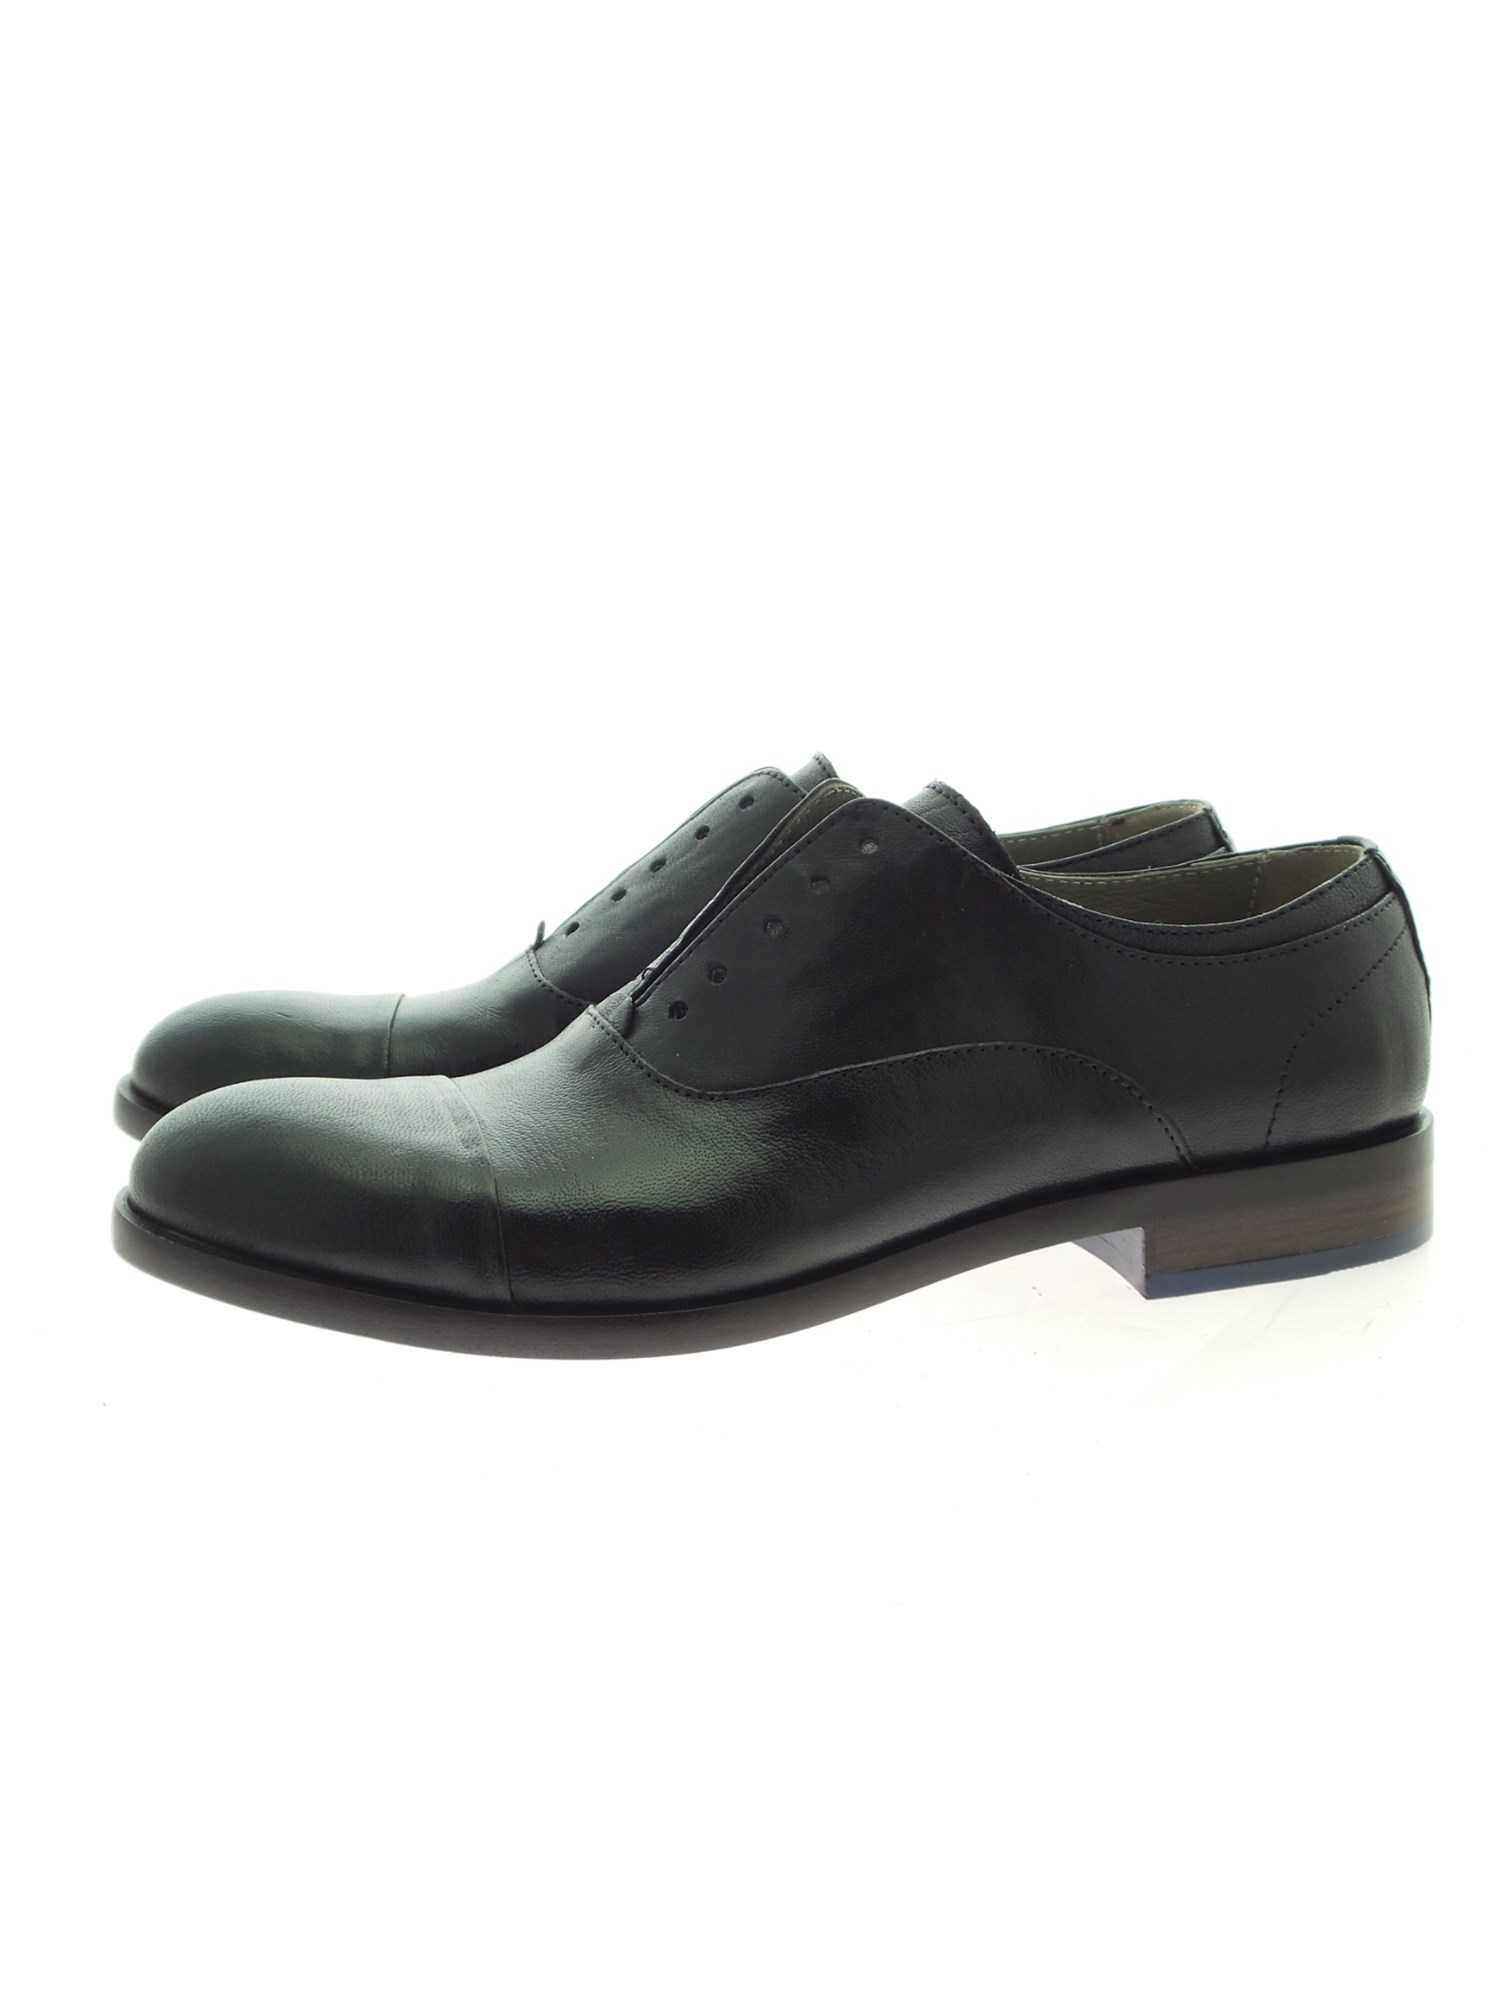 REBLU' 1236 Black Shoes Man